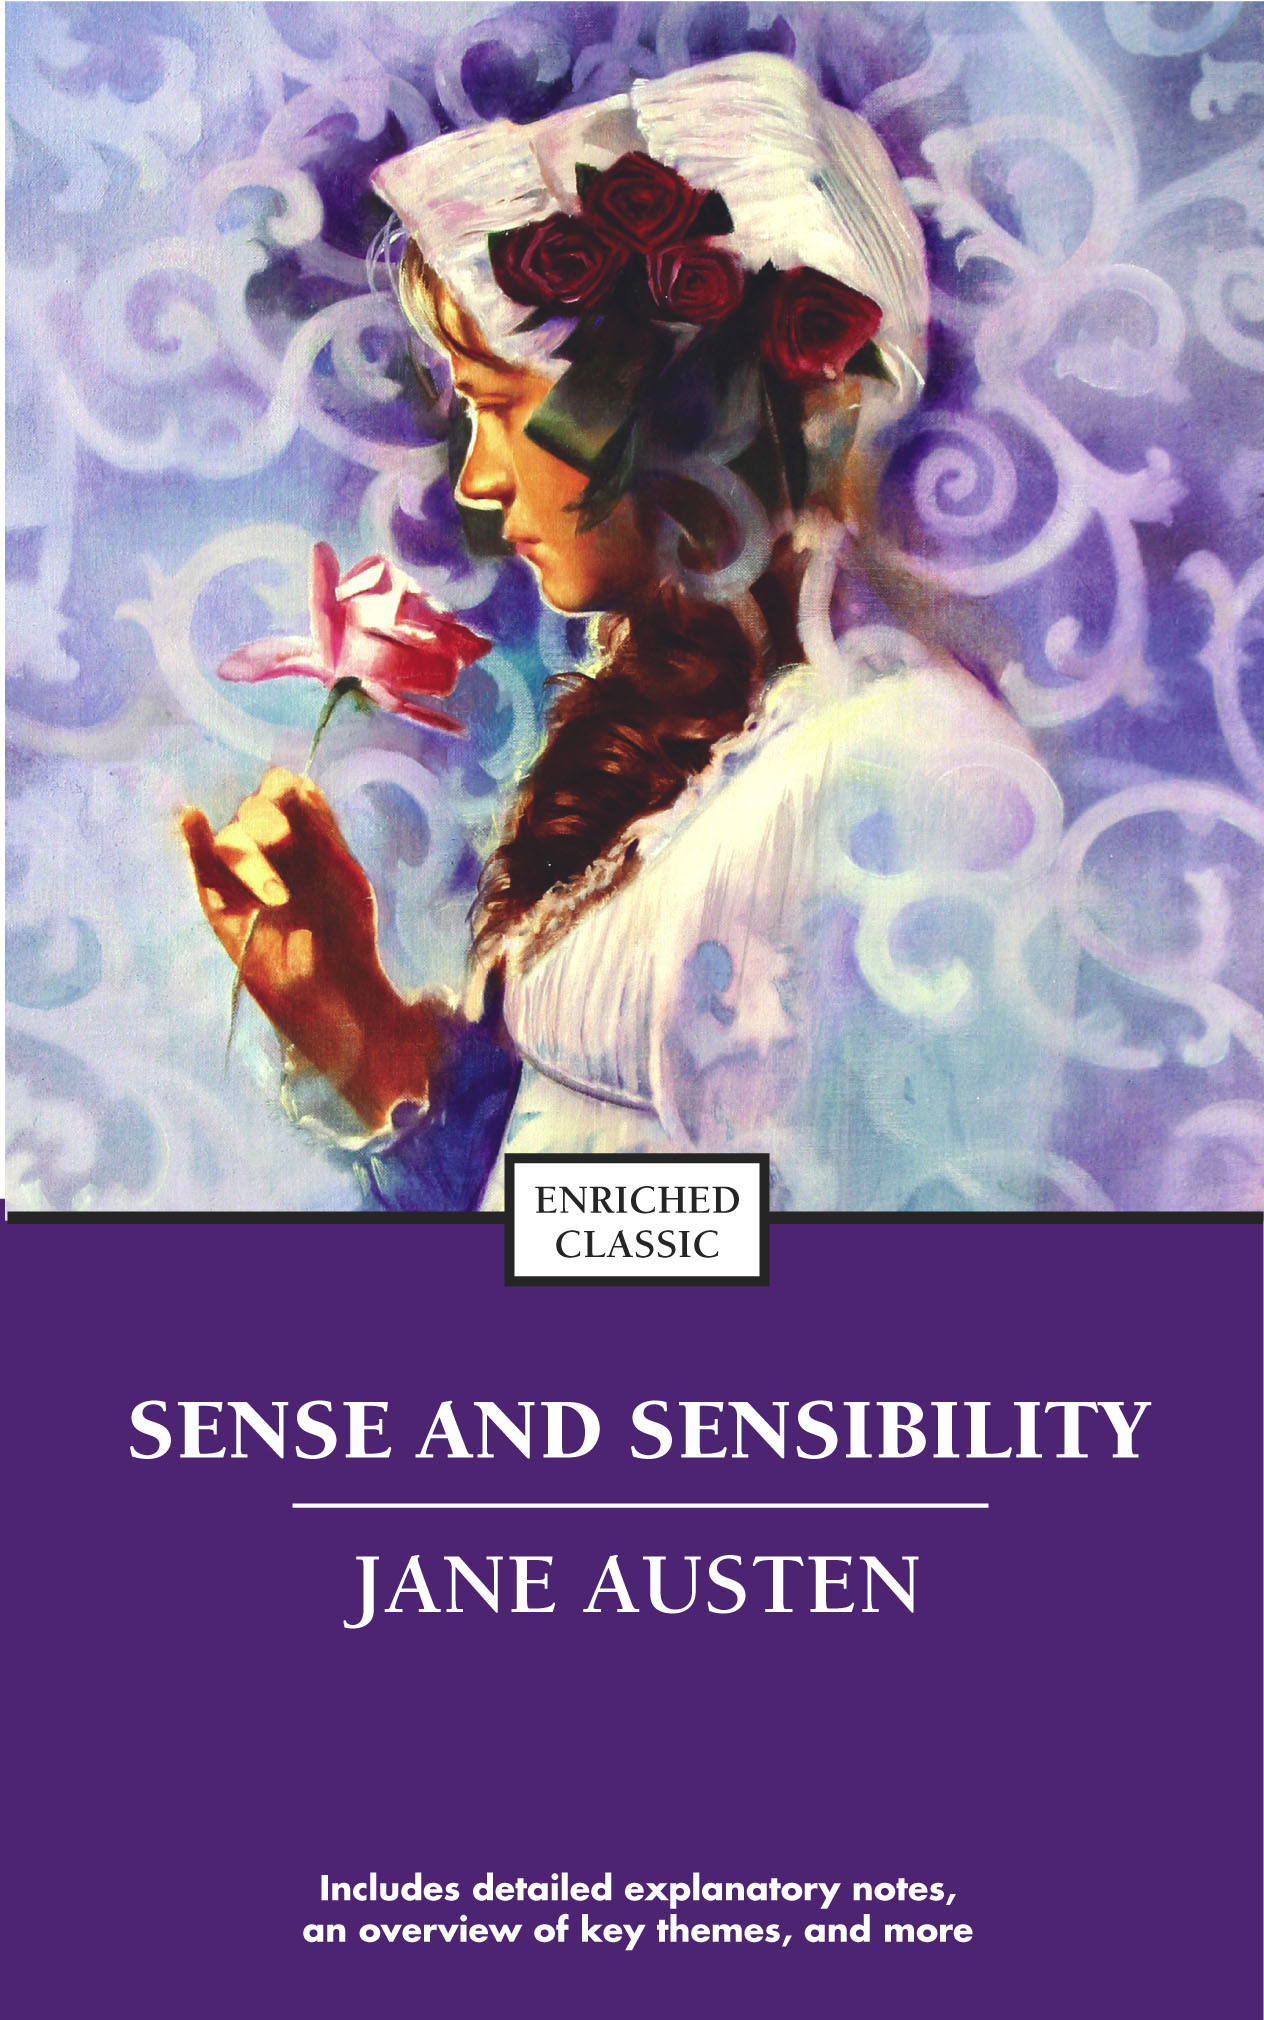 a literary analysis of the novel sense and sensibility by jane austen After doing the analysis through its theme, plot and characters, this novel  contains  sense and sensibility is jane austen's first novel to be published it is  a.